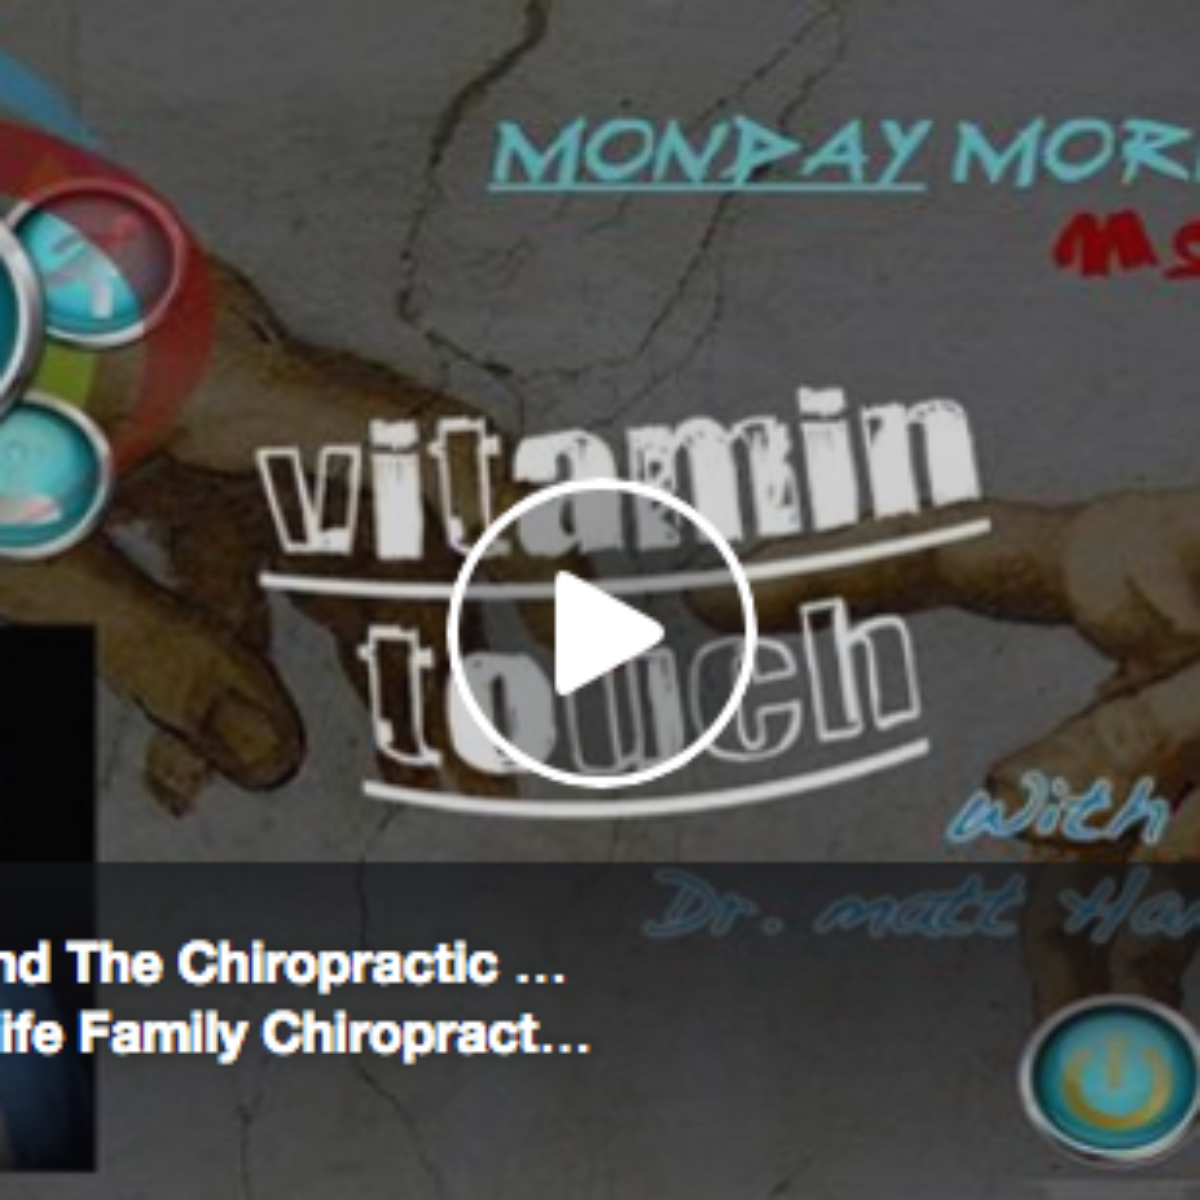 Vitamin Touch & The Chiropractic Approach